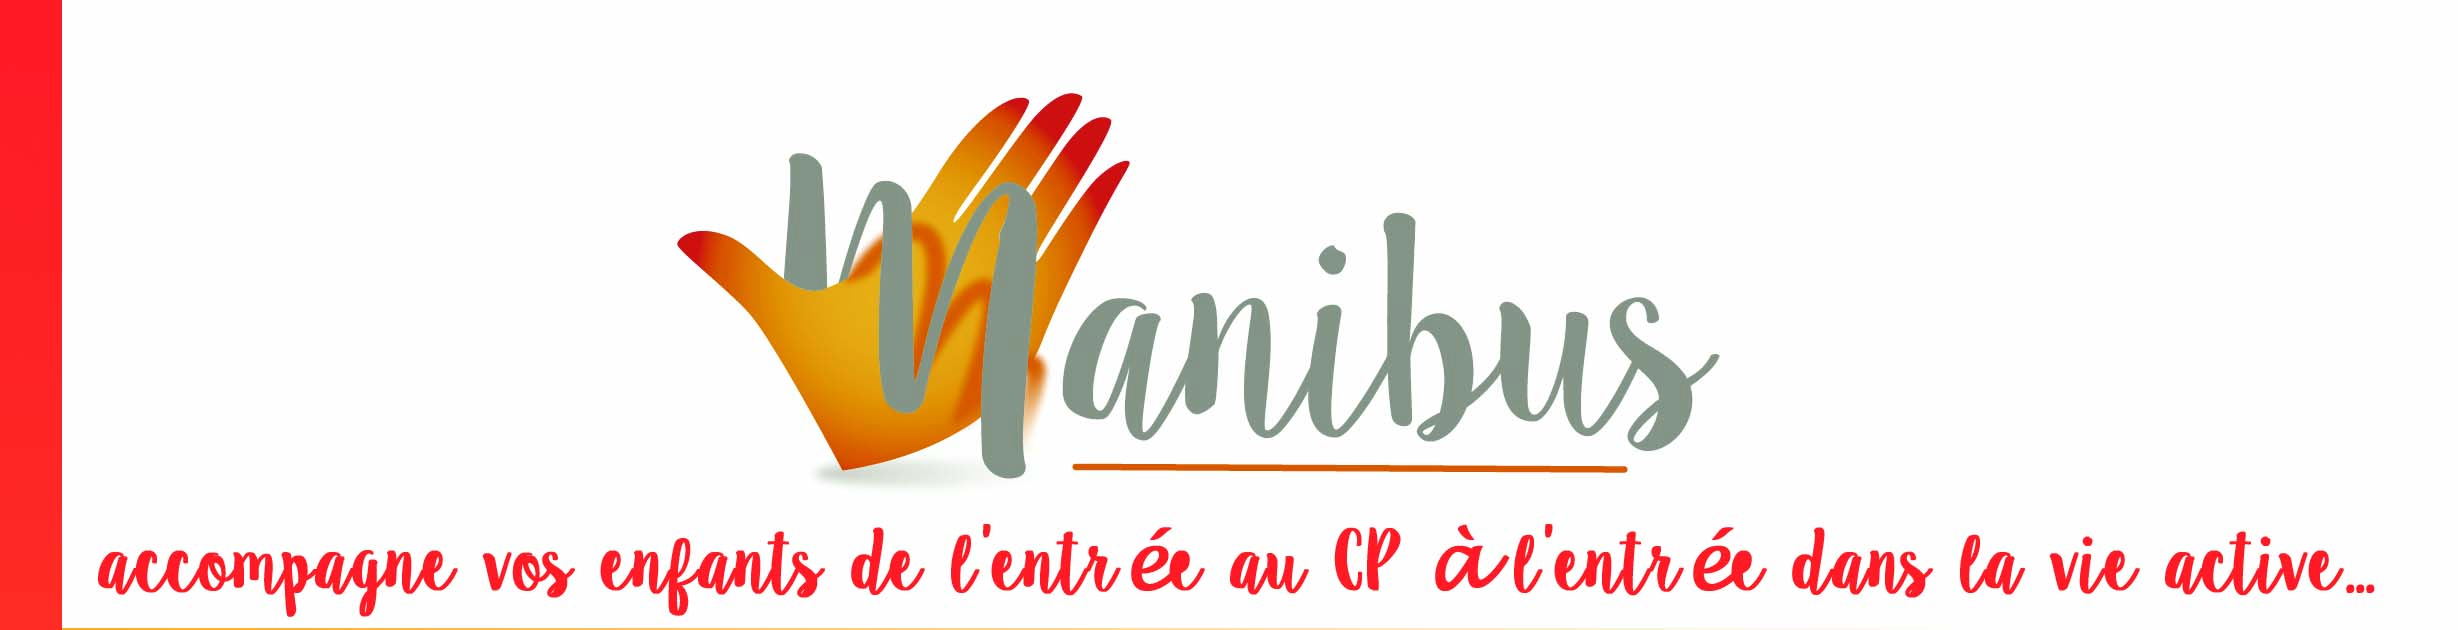 accompagnement scolaire coaching scolaire